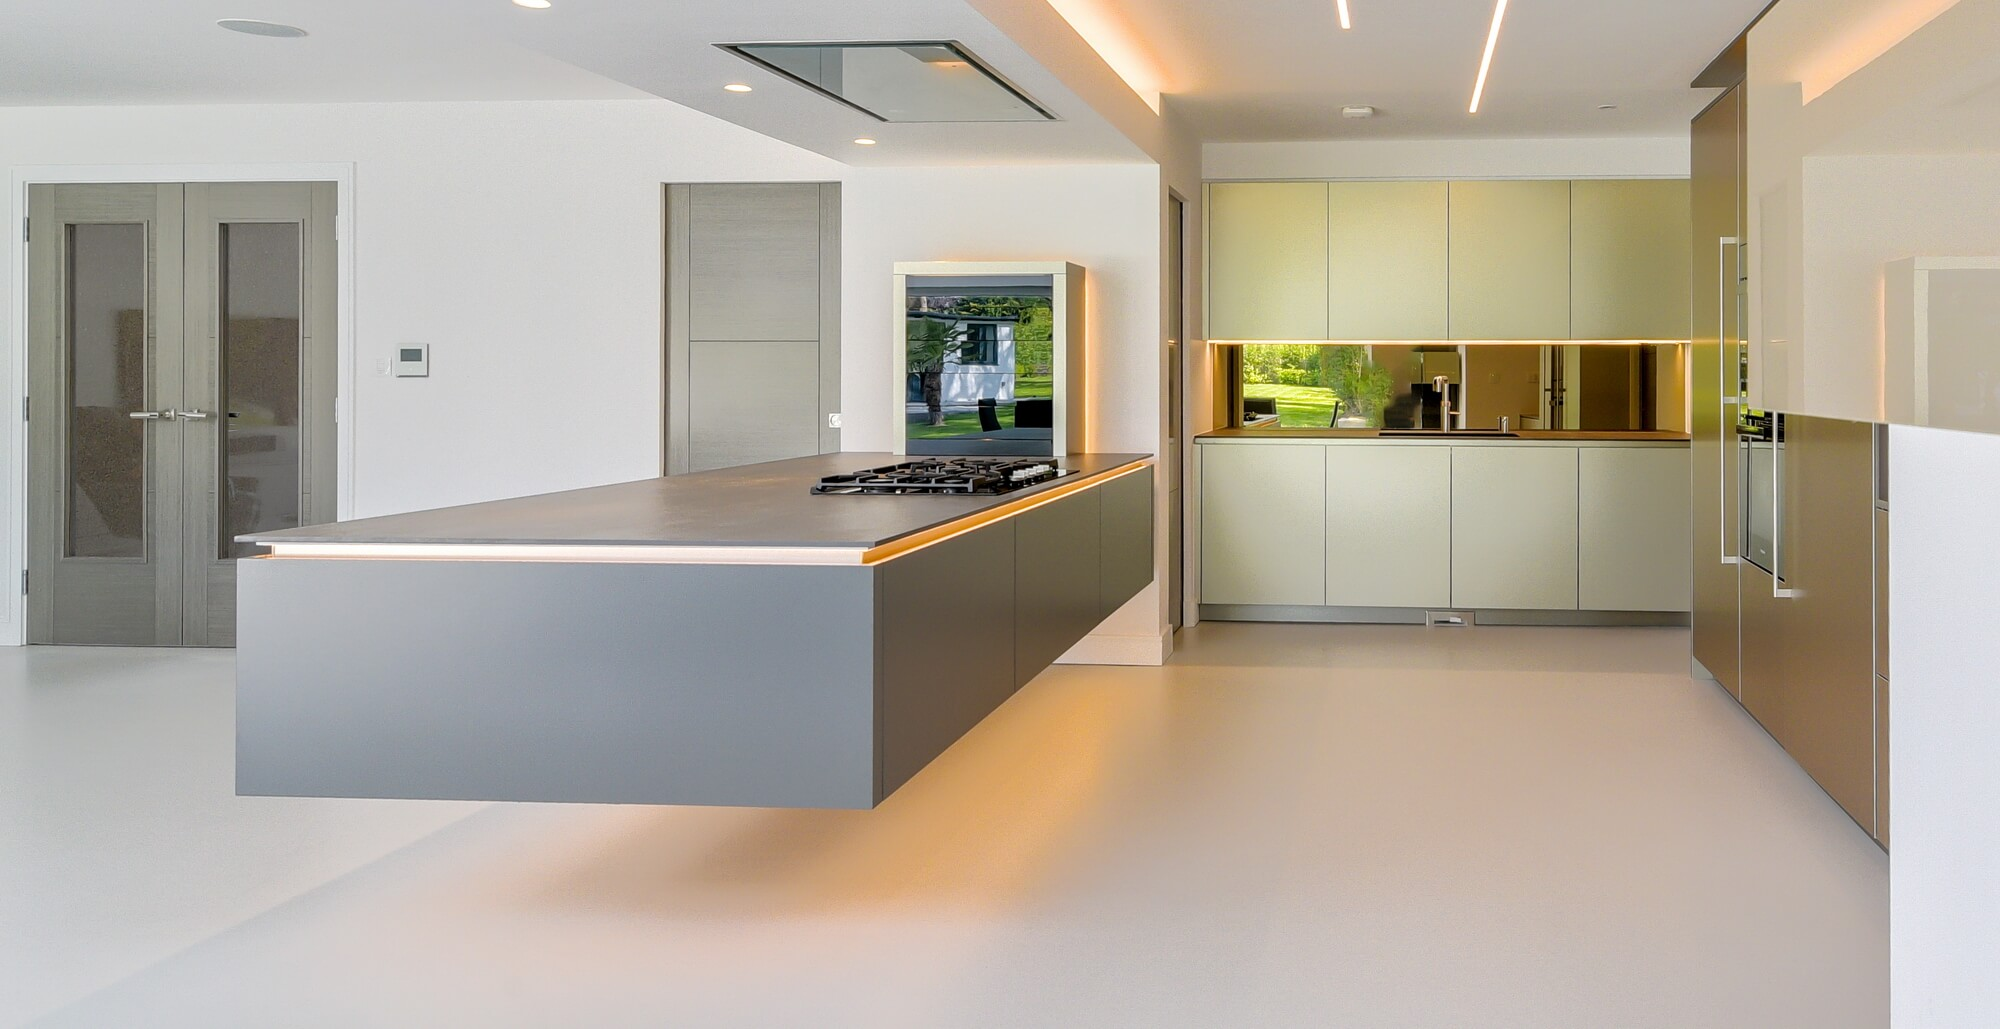 Floating or Levitating – Whatever you call it, this kitchen is ...